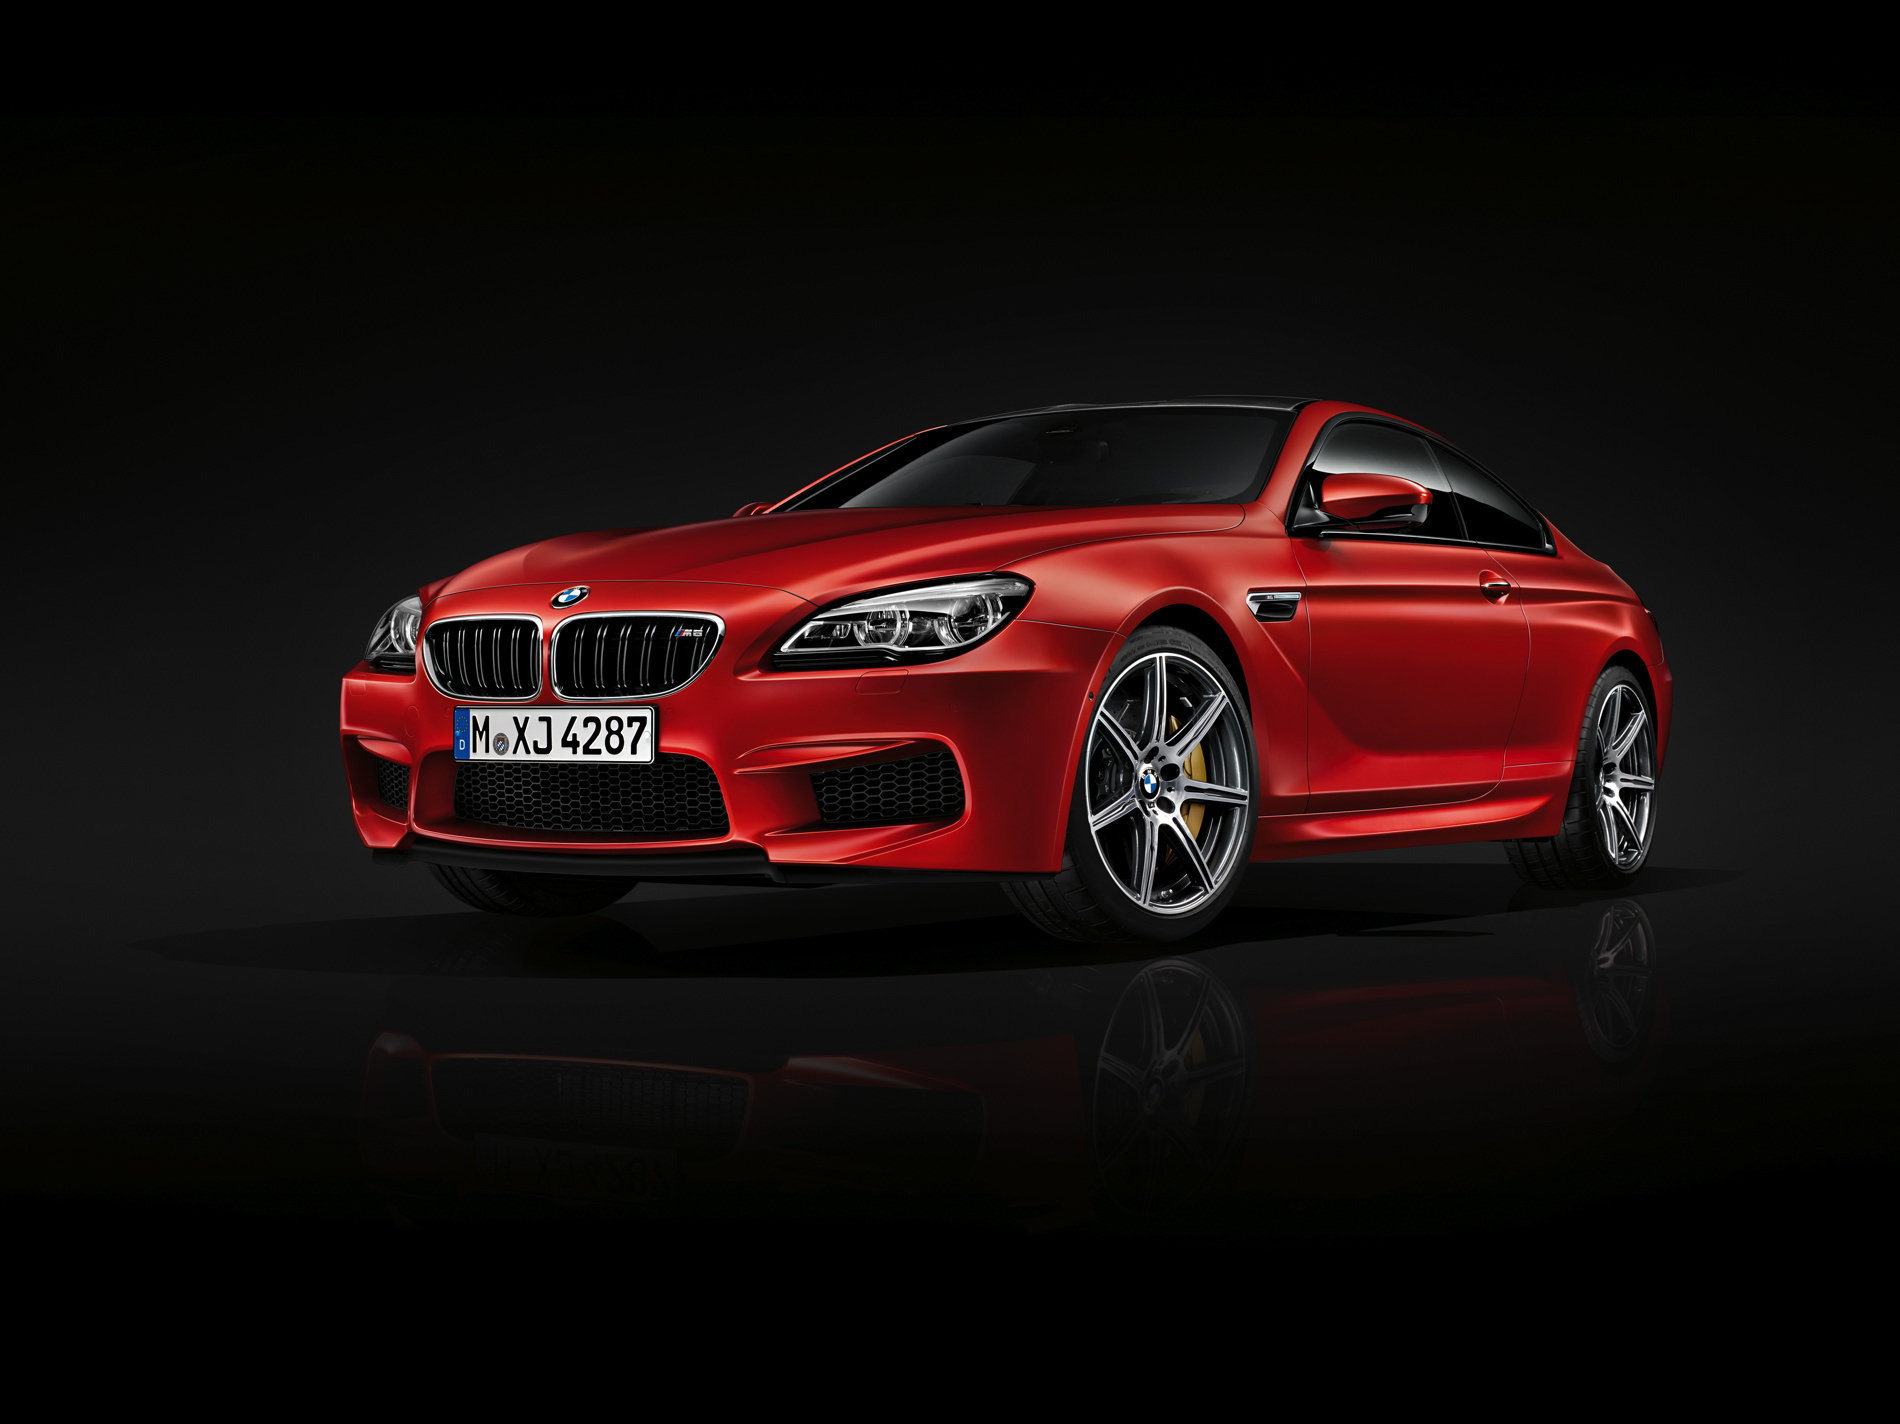 2015 bmw m6 competition package 600hp images 02